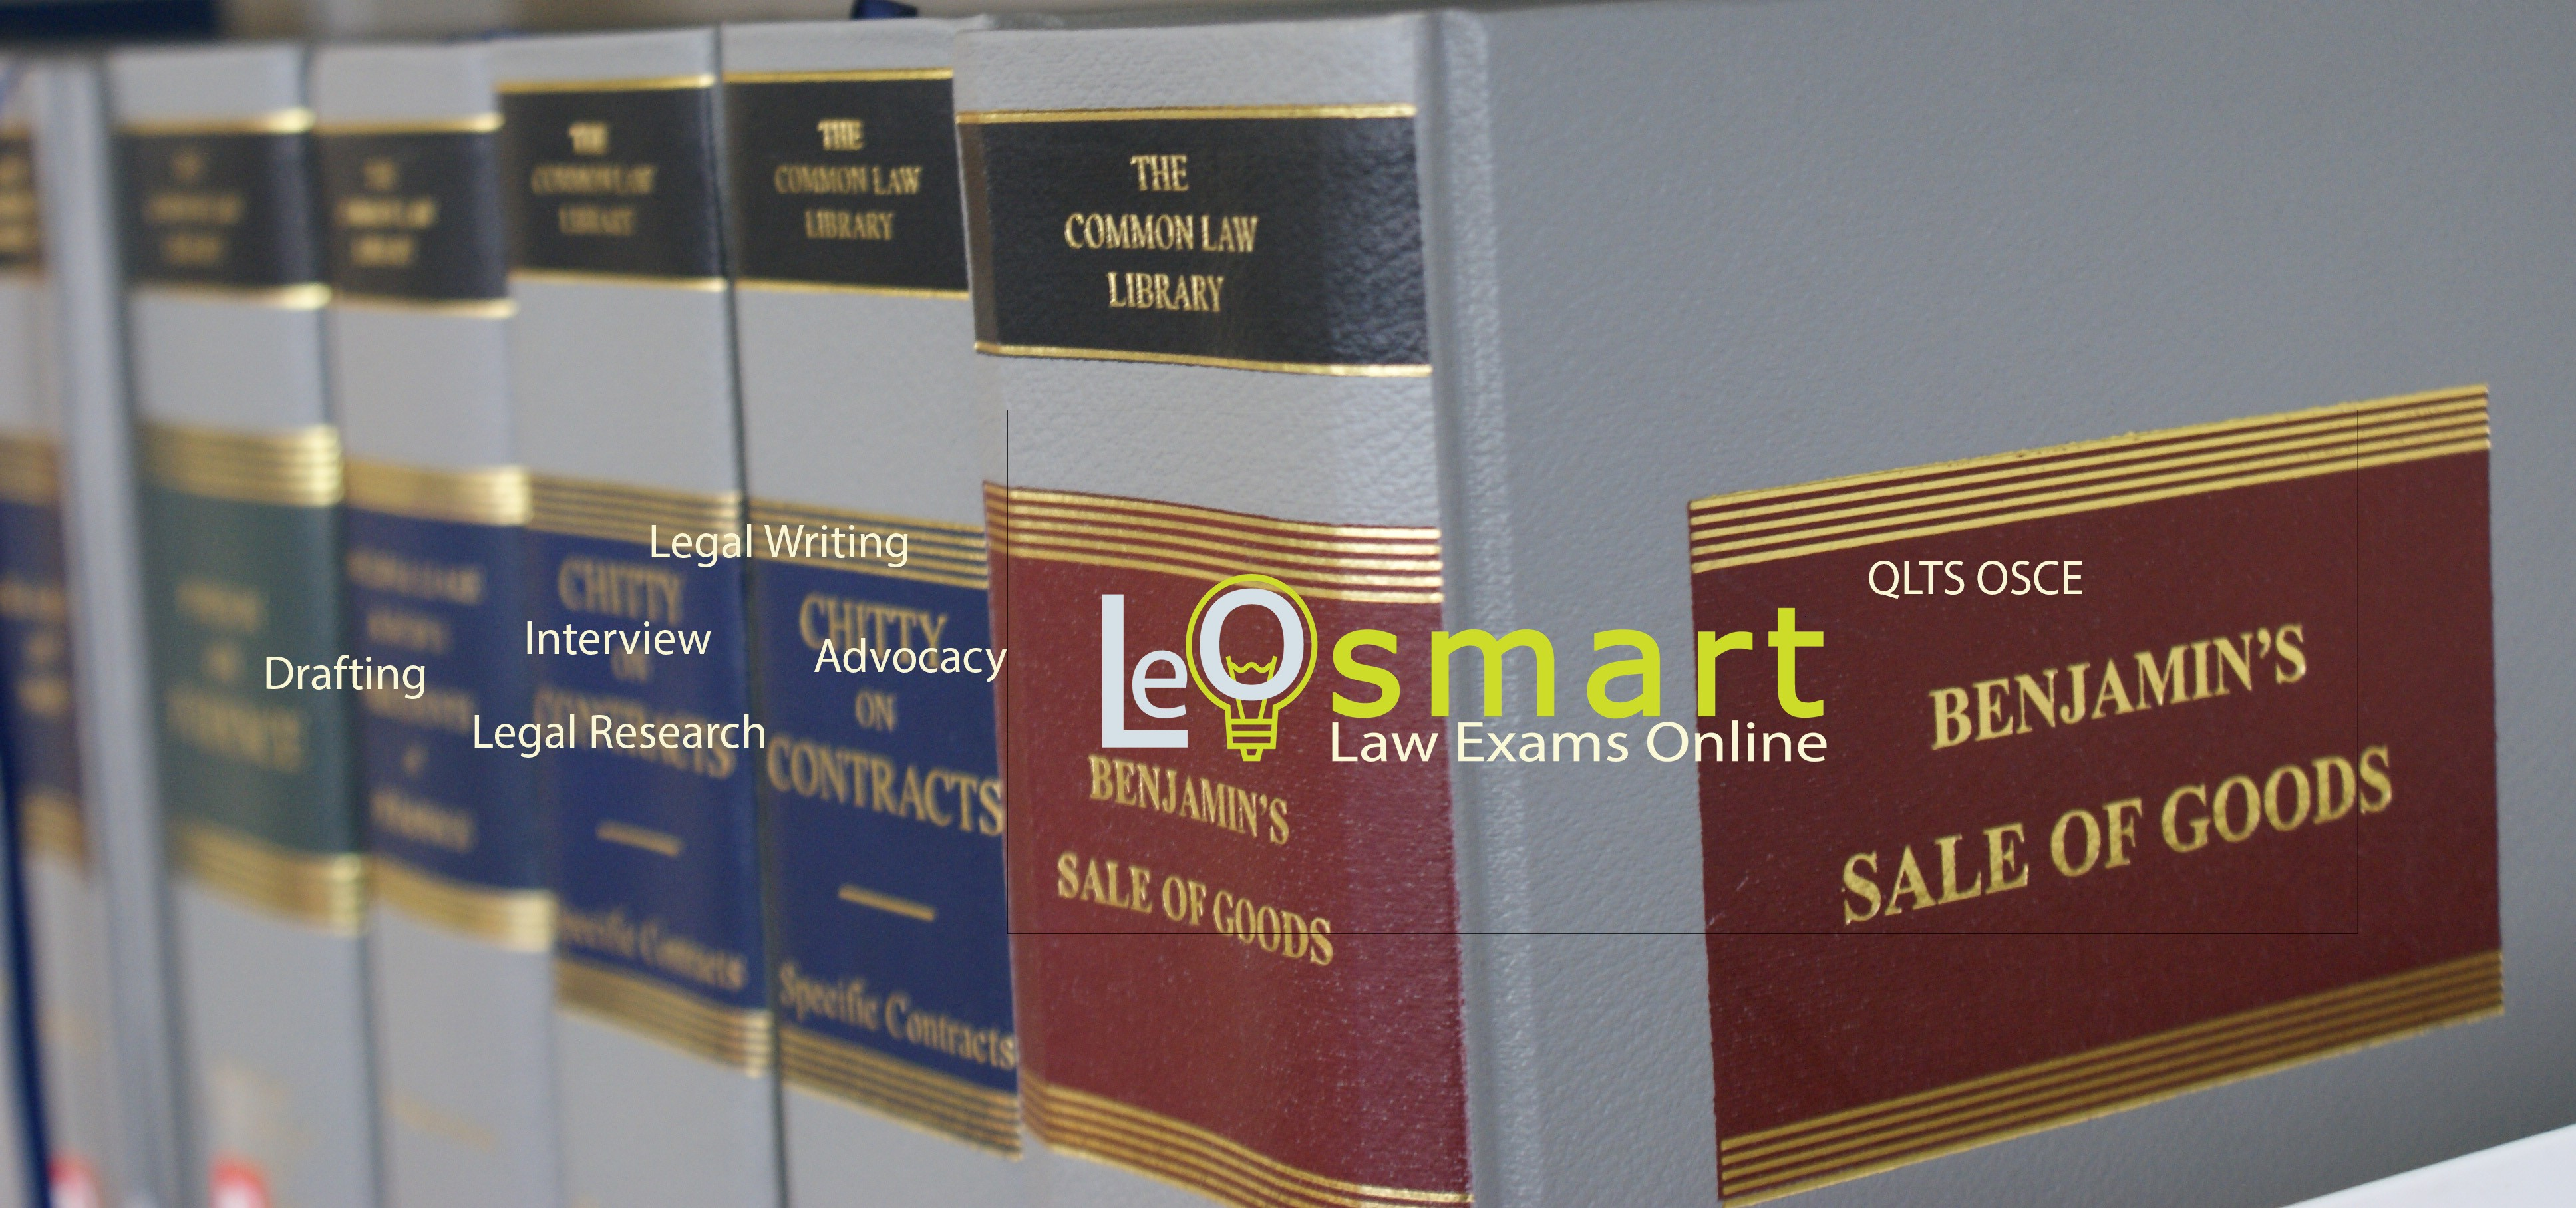 LEOsmart Law Exams Online | LinkedIn